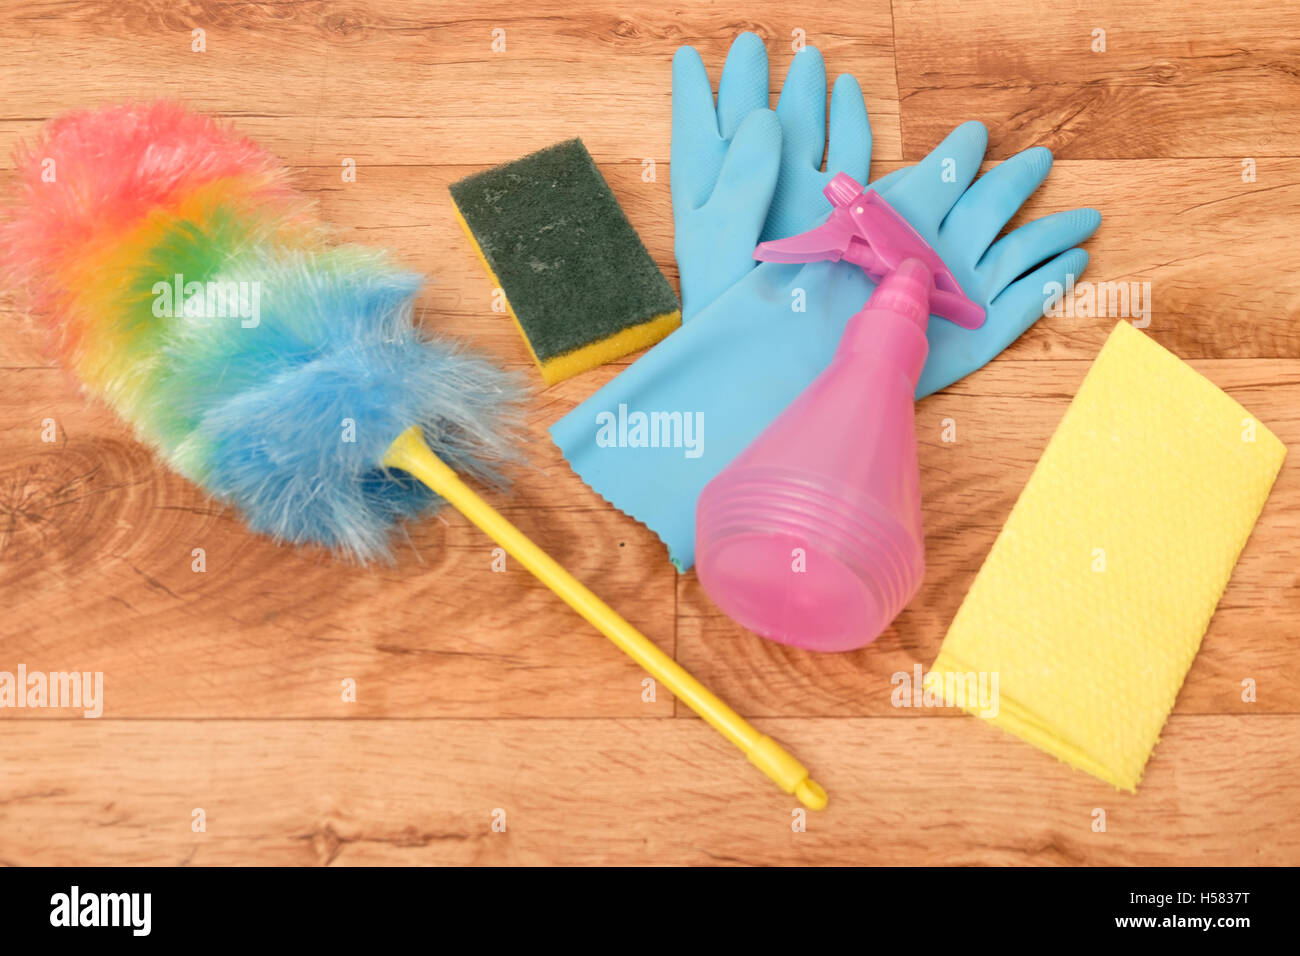 Cleaning tools on a parquet floor - Stock Image